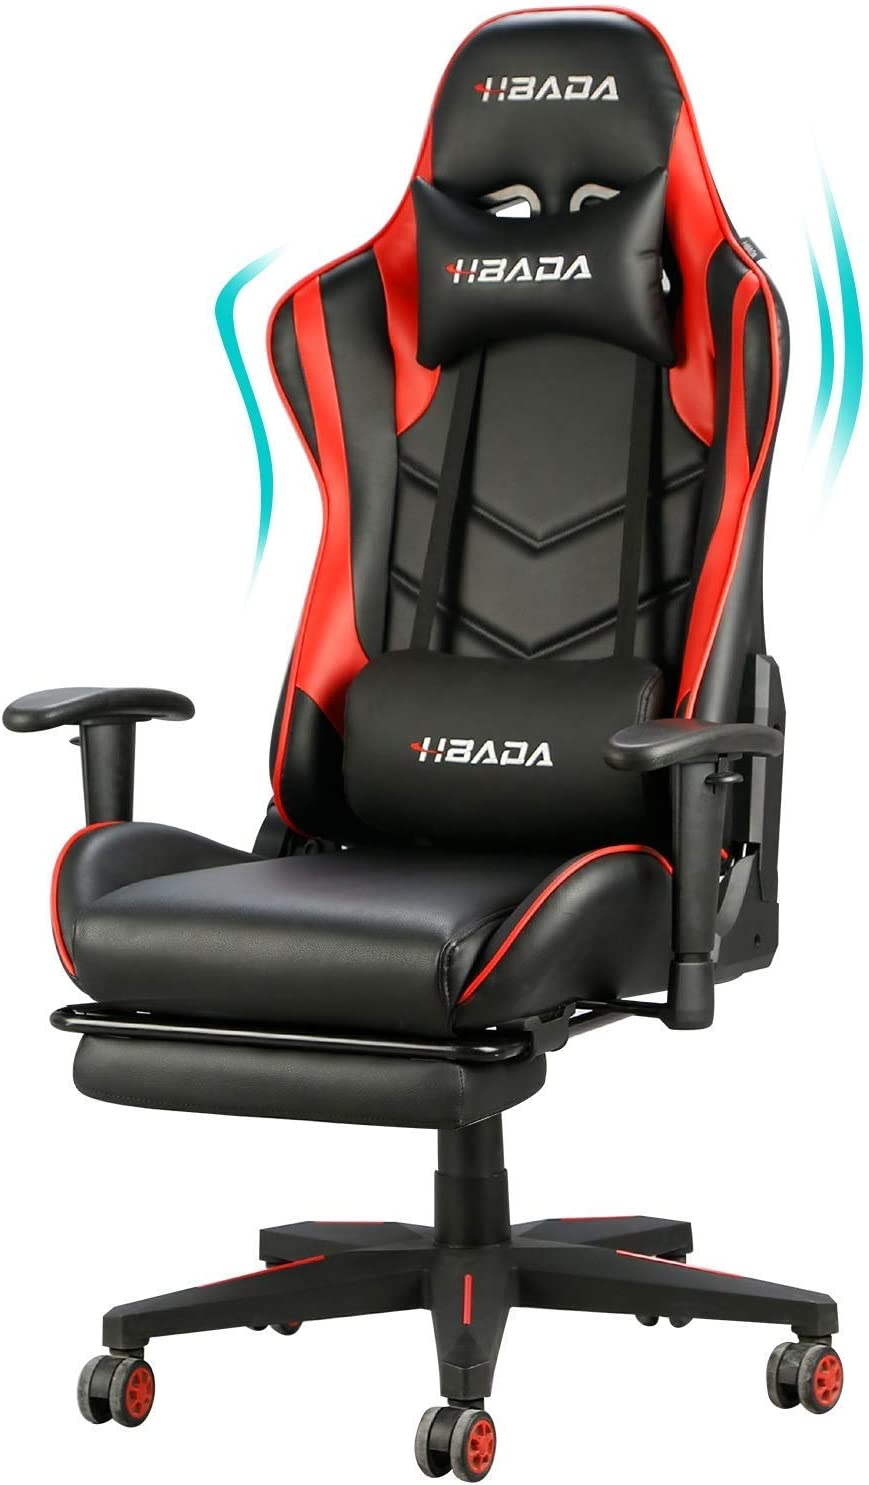 HDada-Gaming-Chair-Racing-Style